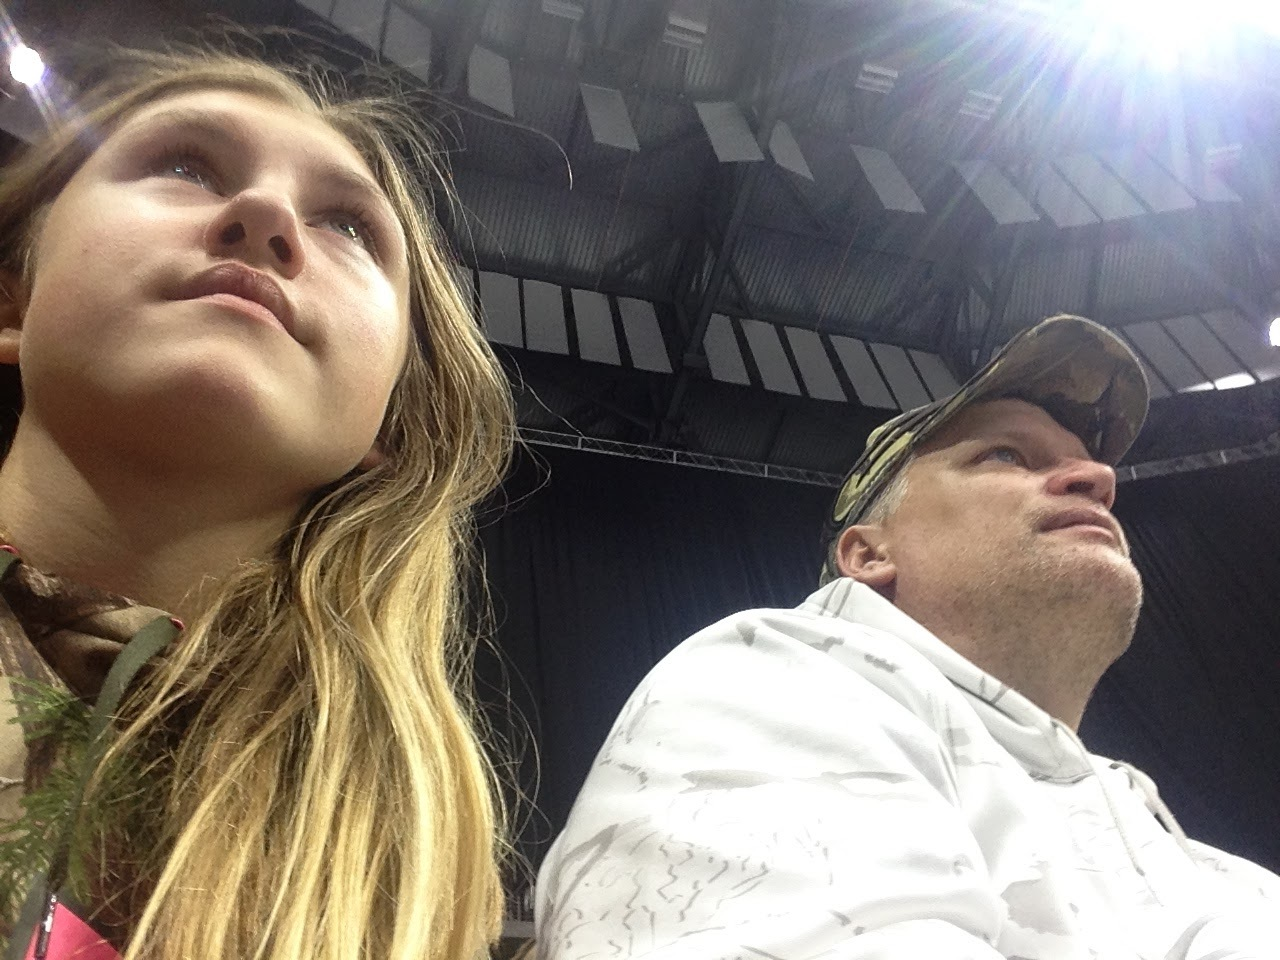 Ashlee-and-Daddy-Focusing.jpg